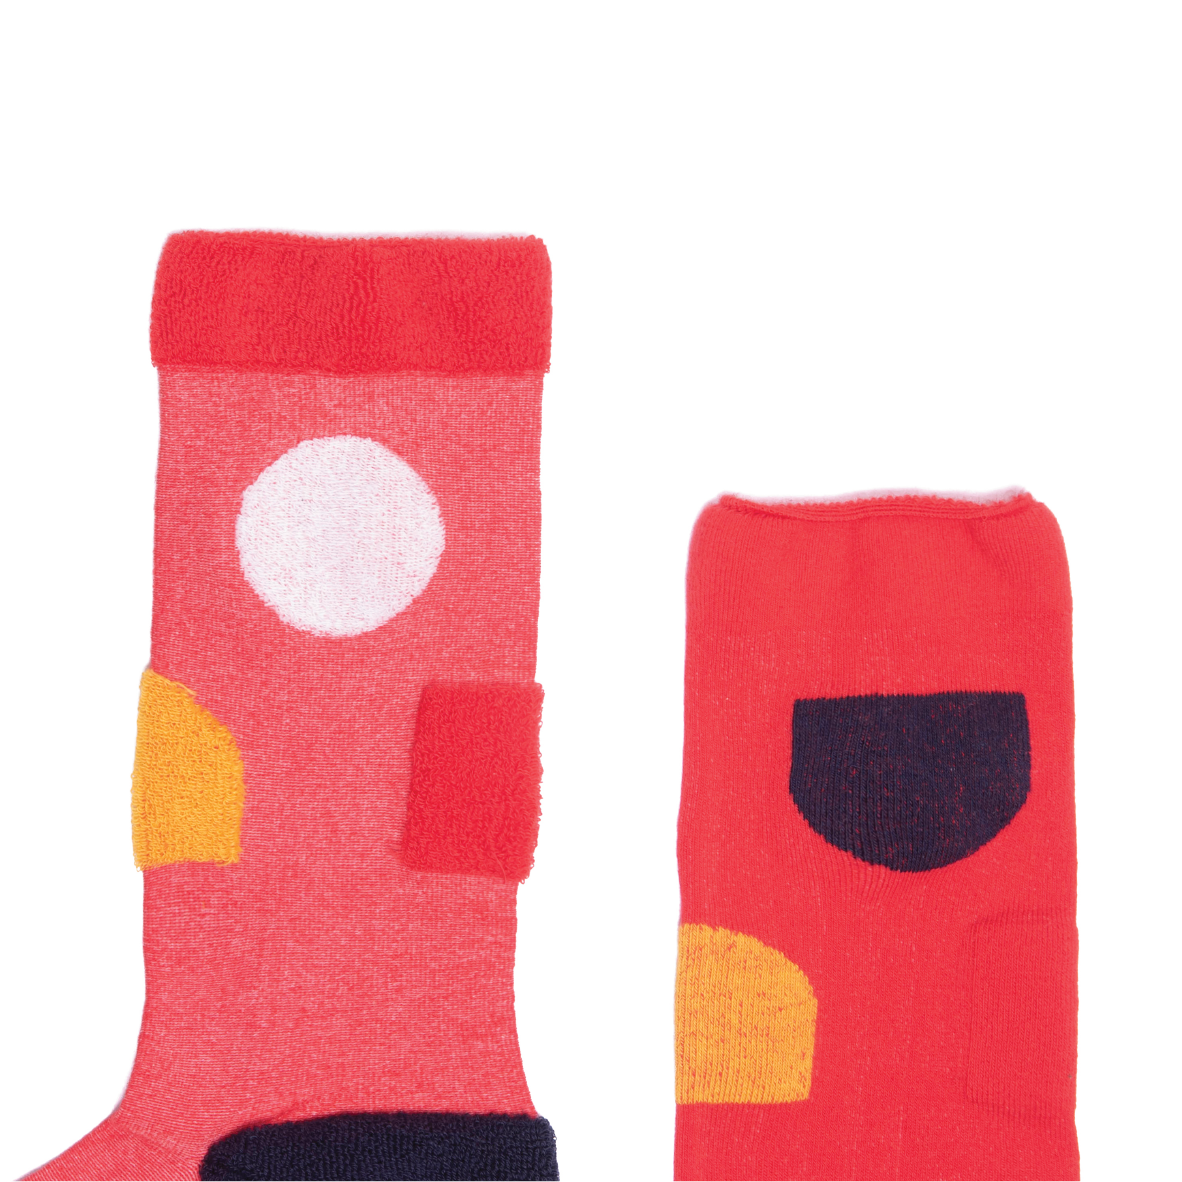 MY INNER BEAUTY: JIWA | Red & Reebok Gold | Reversible Patterned Socks